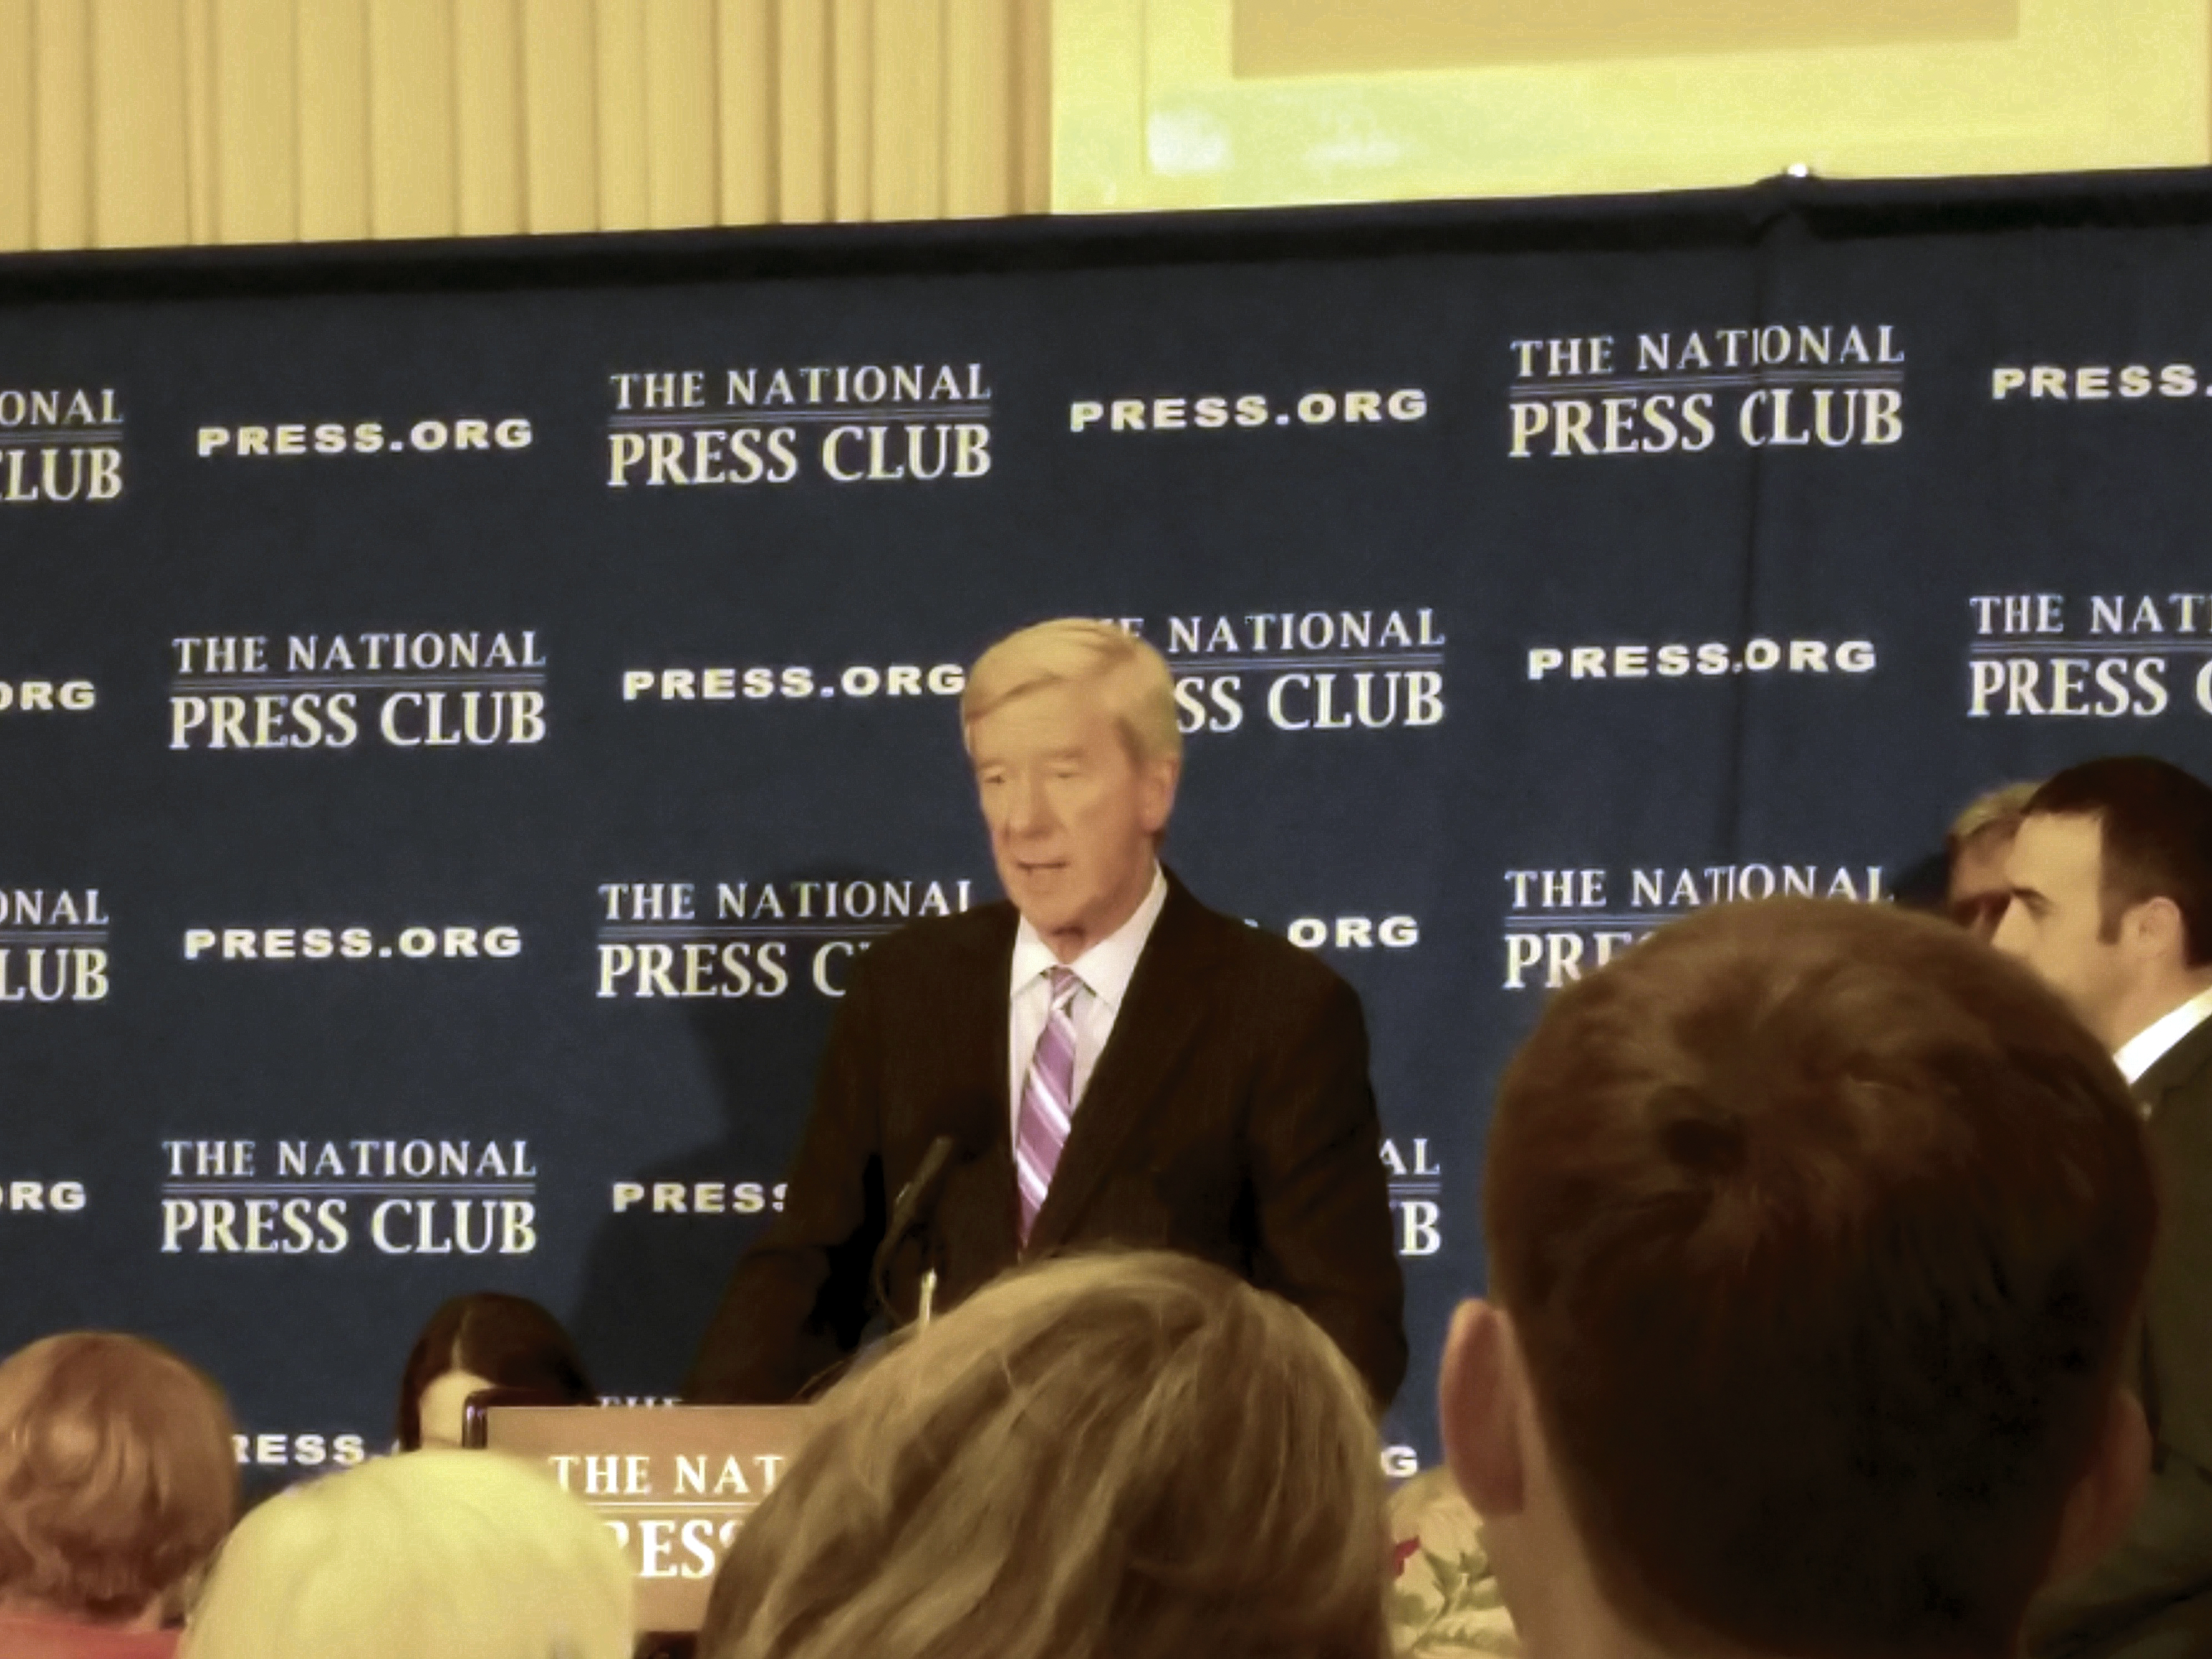 Libertarian vice presidential nominee Gov. William Weld answered questions about his latest campaign during an appearance at the National Press Club. (Warren Rojas/CQ Roll Call)